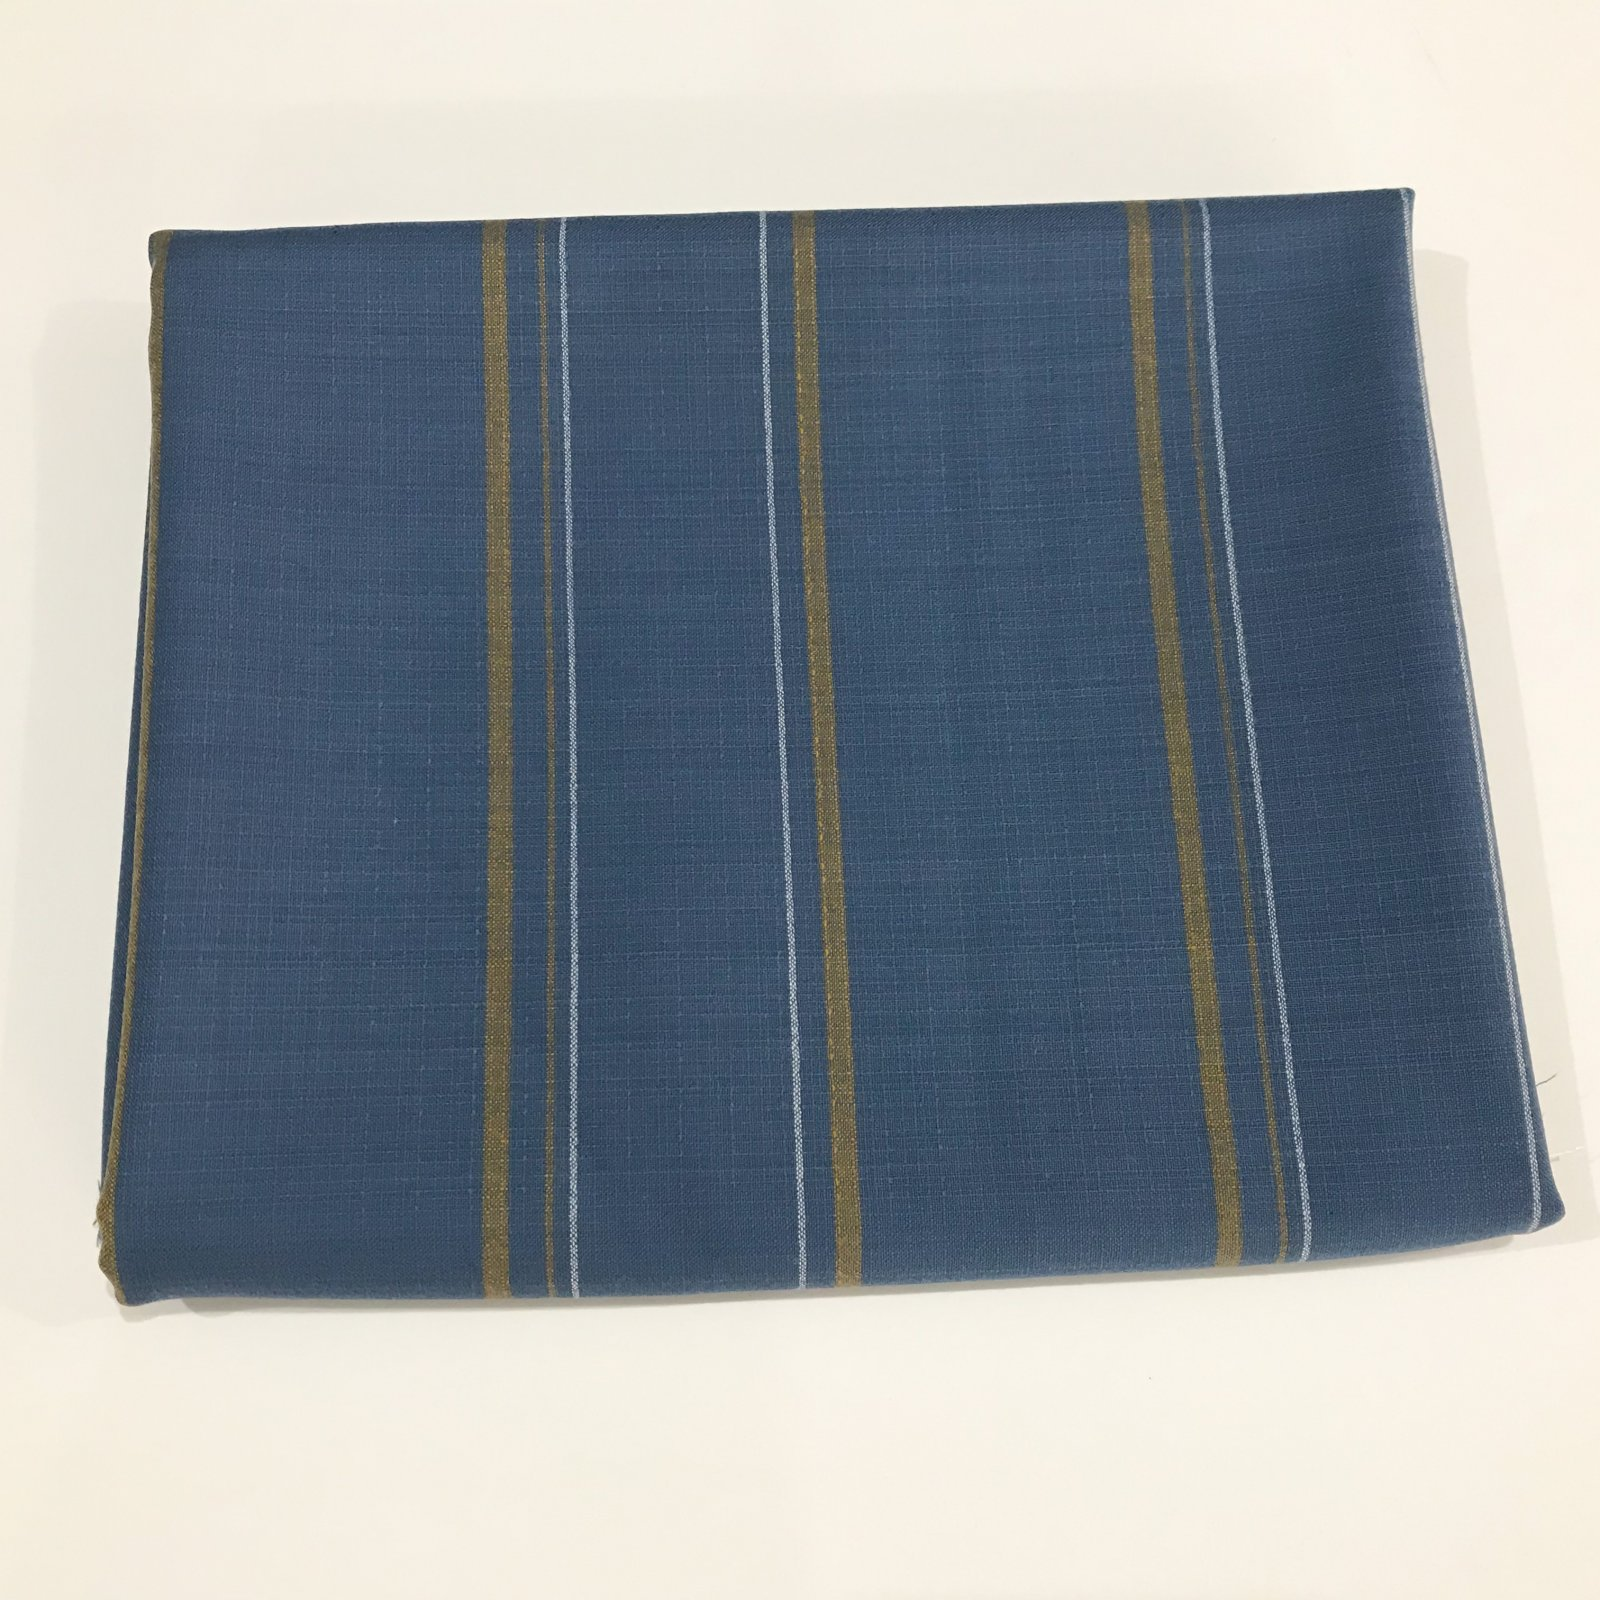 2 2/3 yards - Shirt Weight Pendleton (TM) Wool - Dusty Blue with Gold & White Stripes